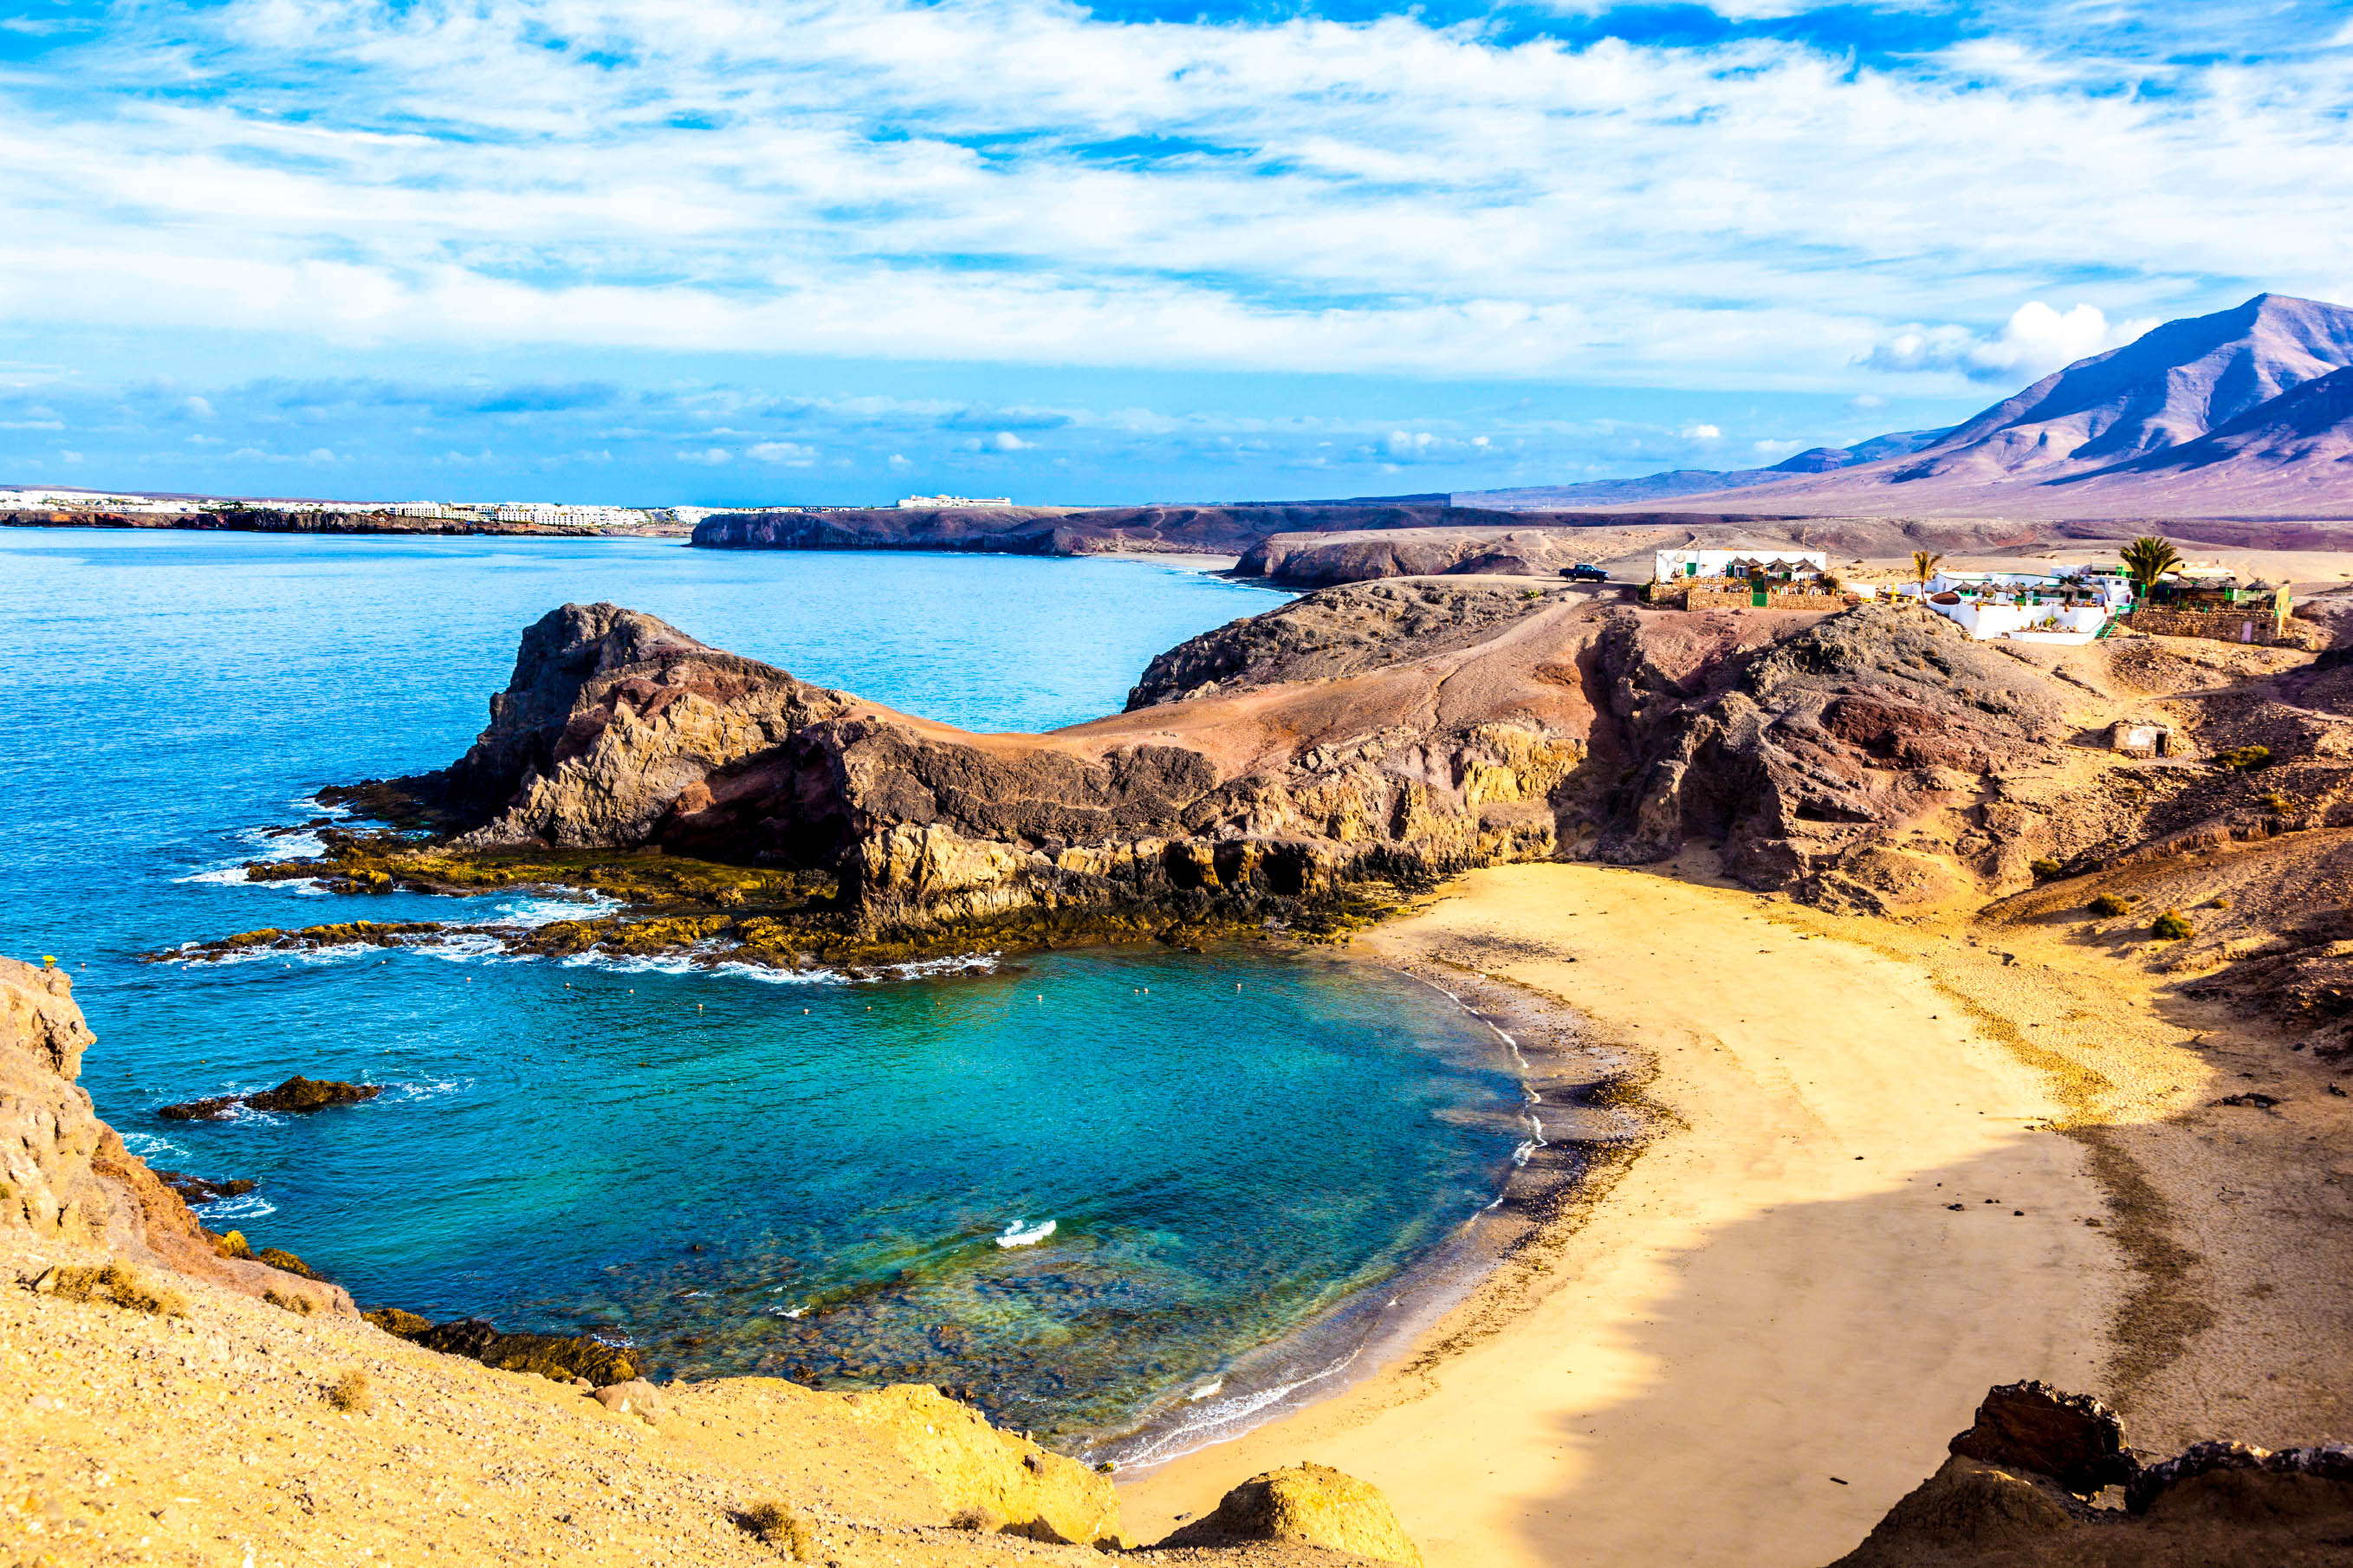 Playa de Papagayo (Parrot's beach) on Lanzarote, Canary islands, Spain